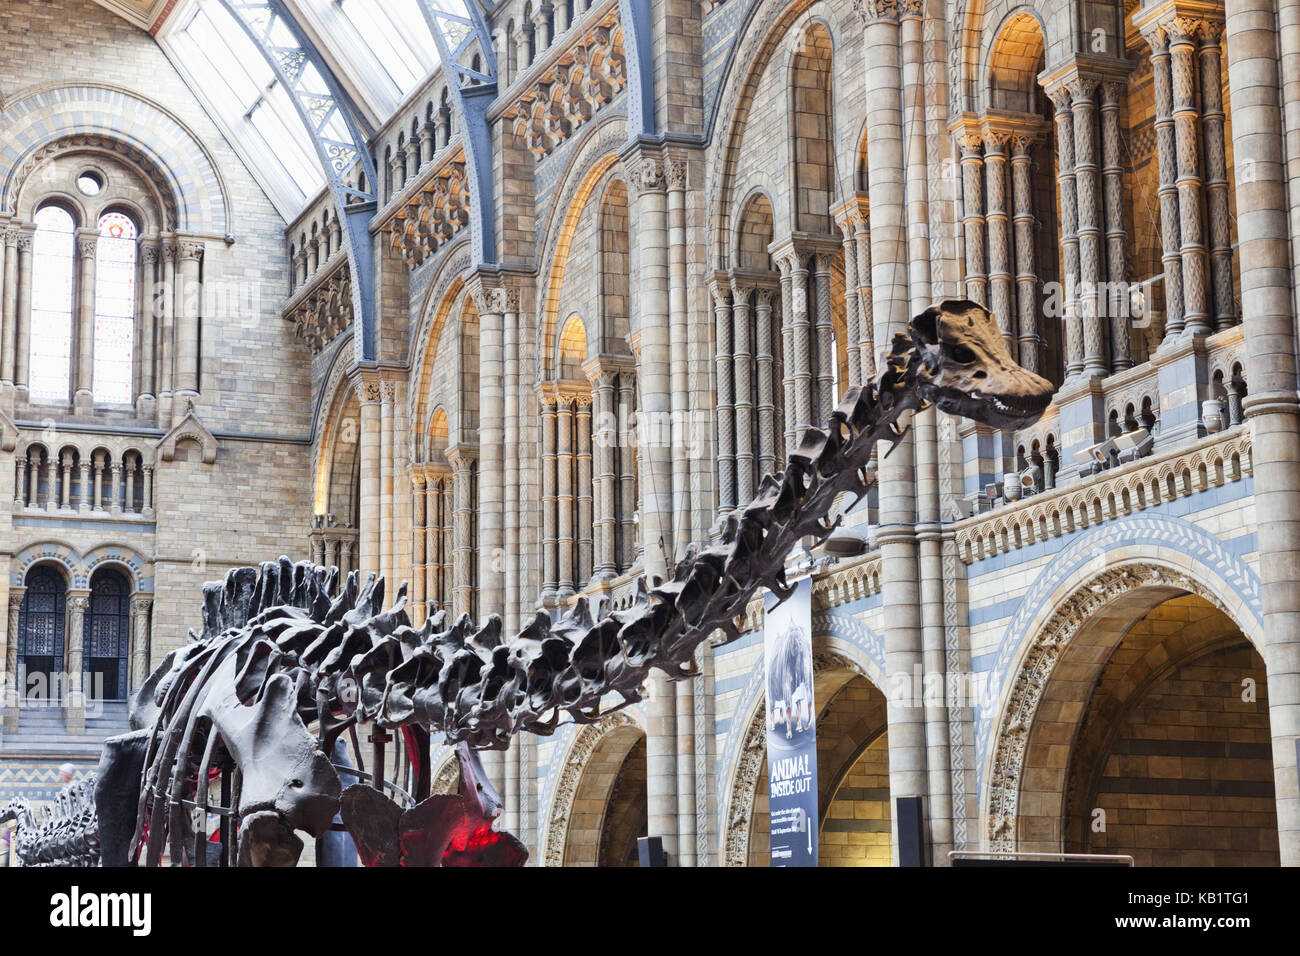 England, London, Kensington, nature-historical museum, Natural History museum, dinosaur skeleton, - Stock Image